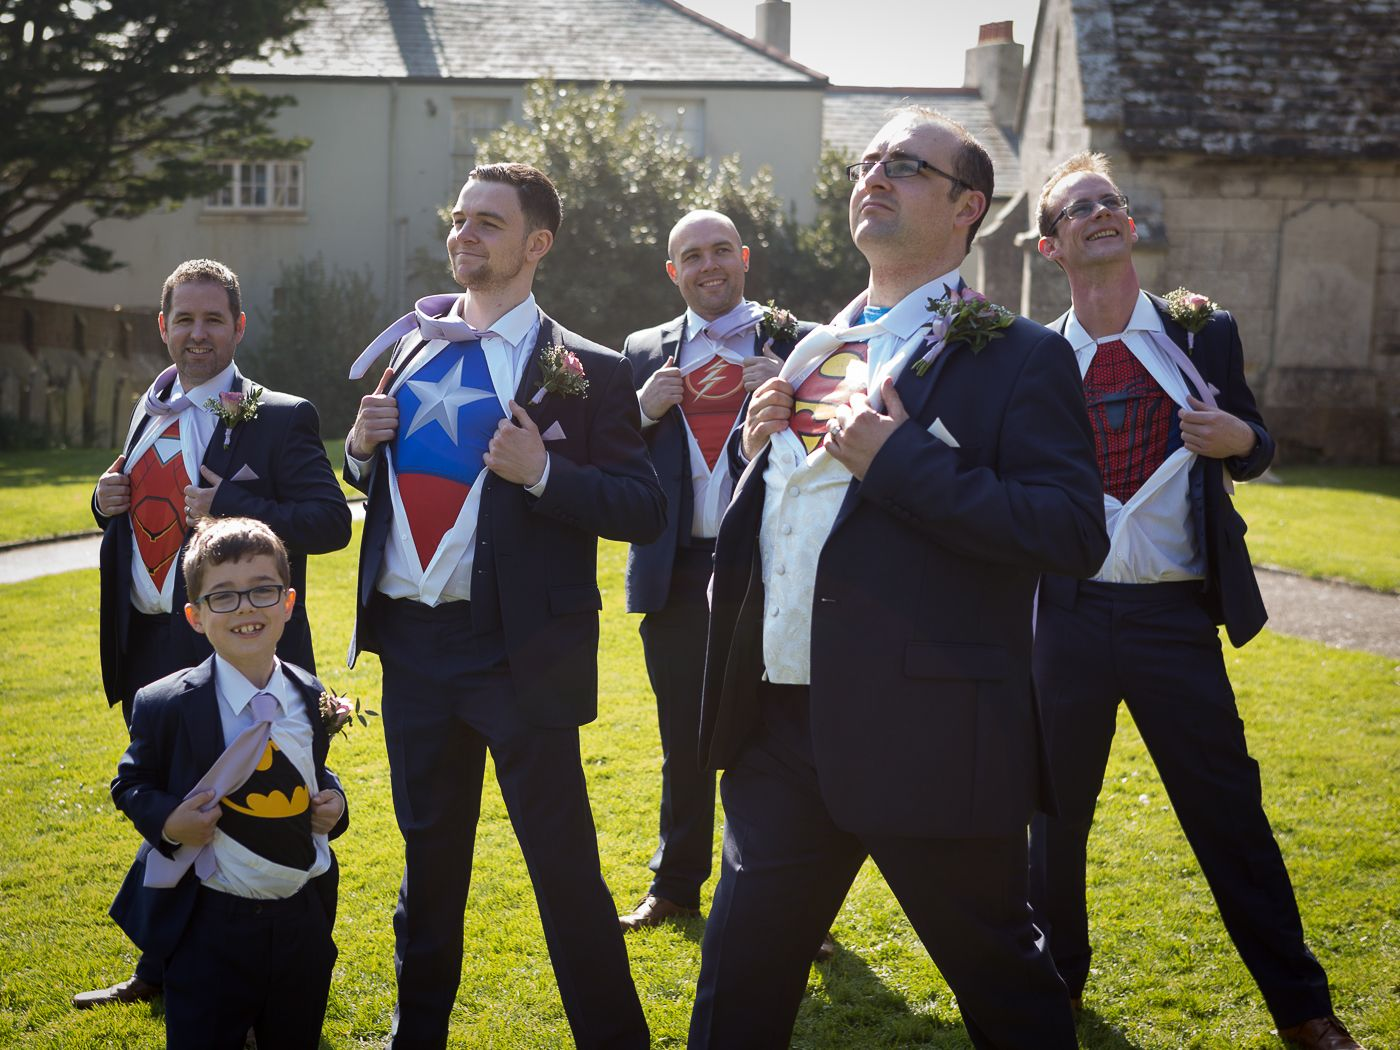 wedding group photo of superheroes t-shirts